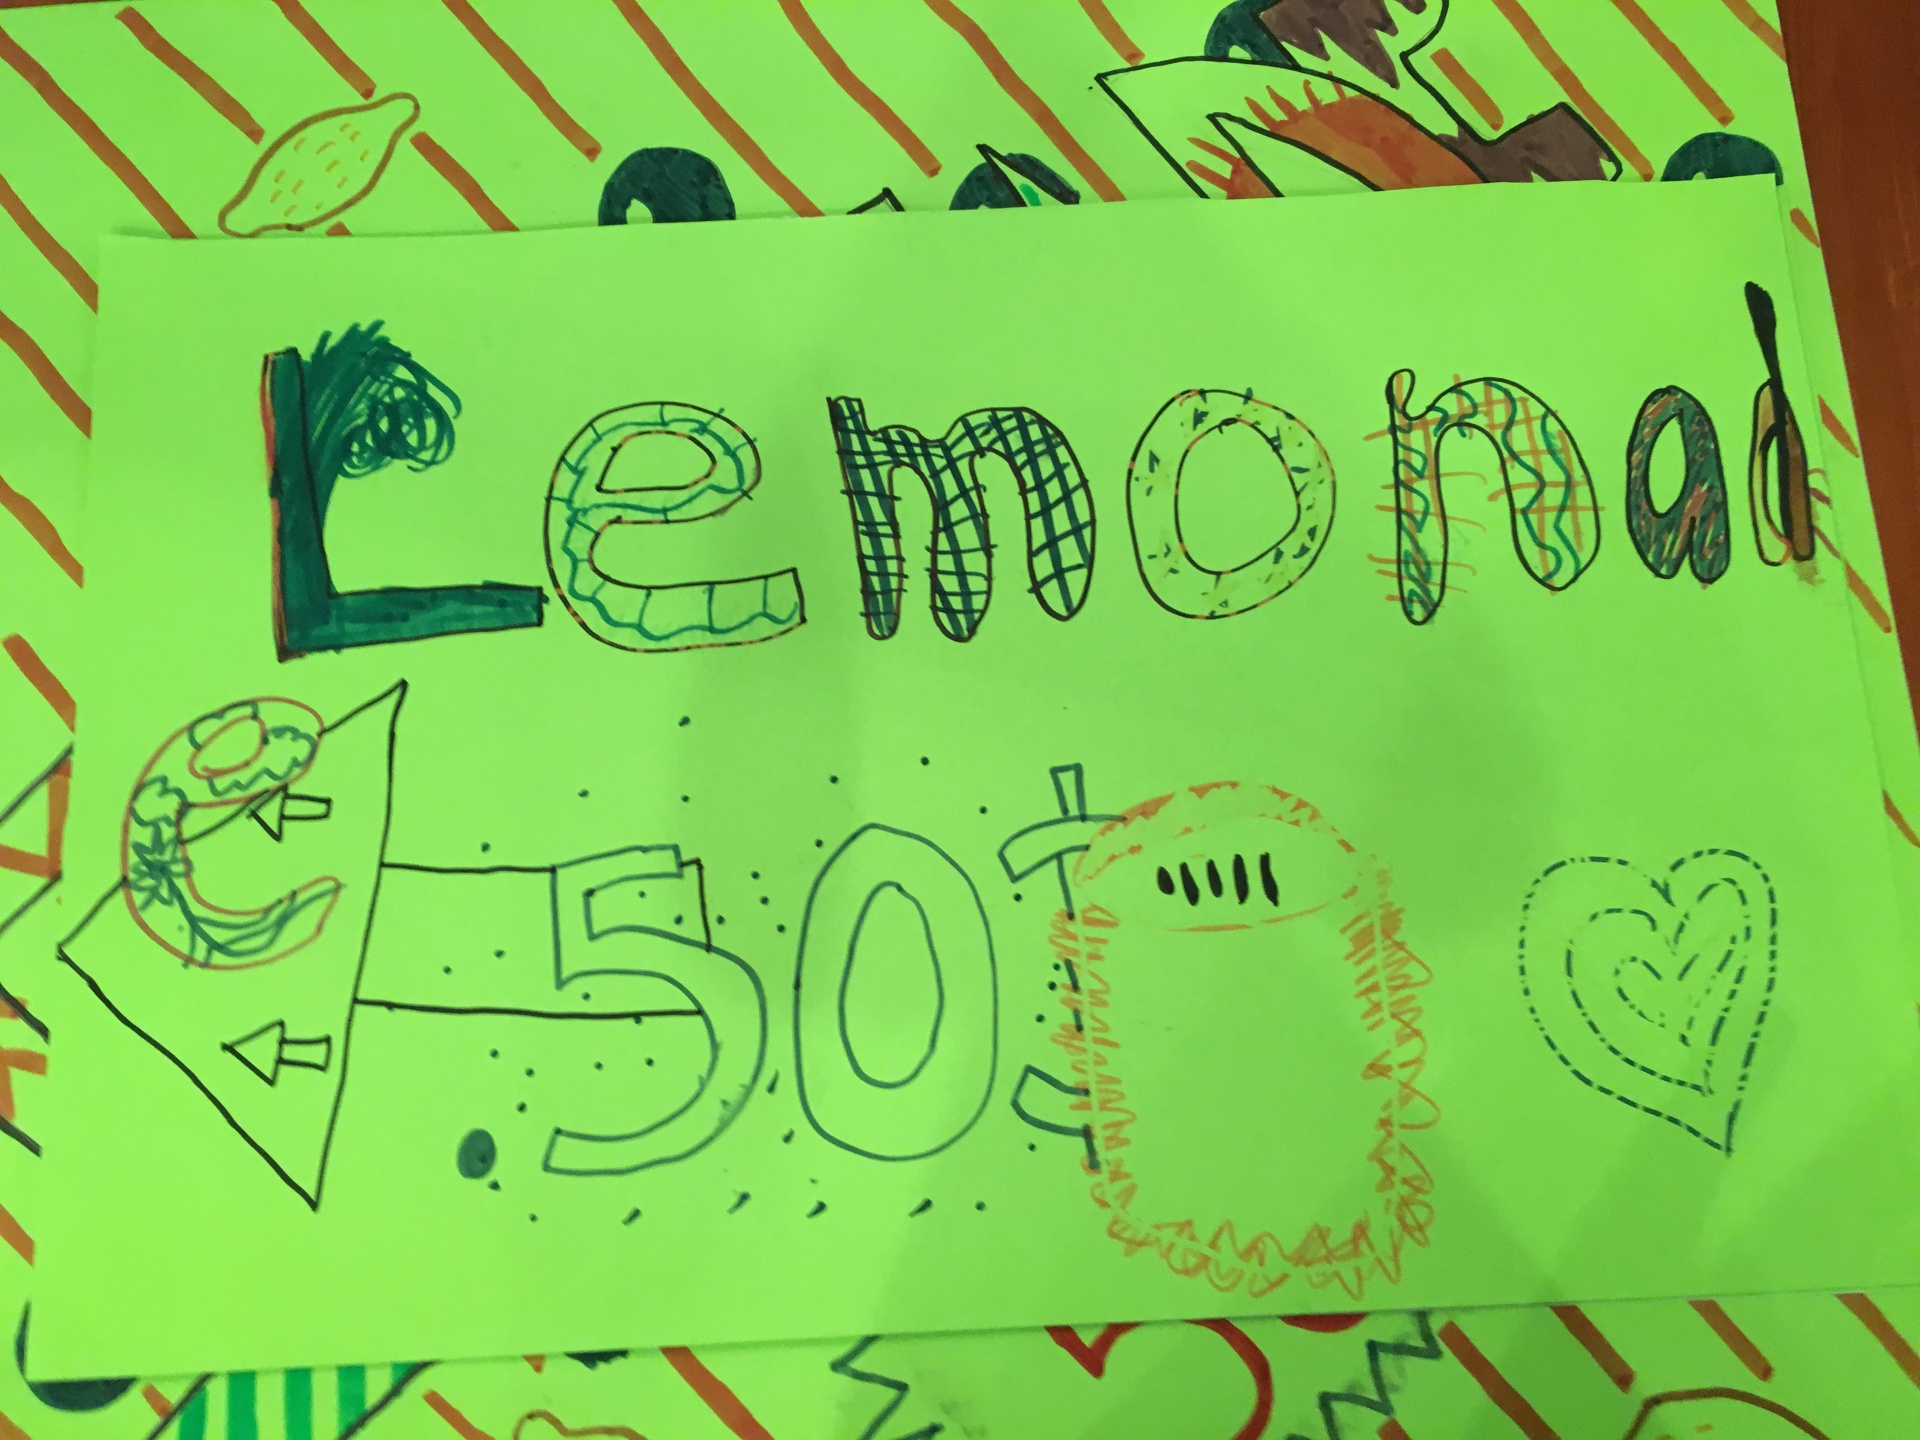 LEMONADE FOR KIDS WITH DISABILITIES